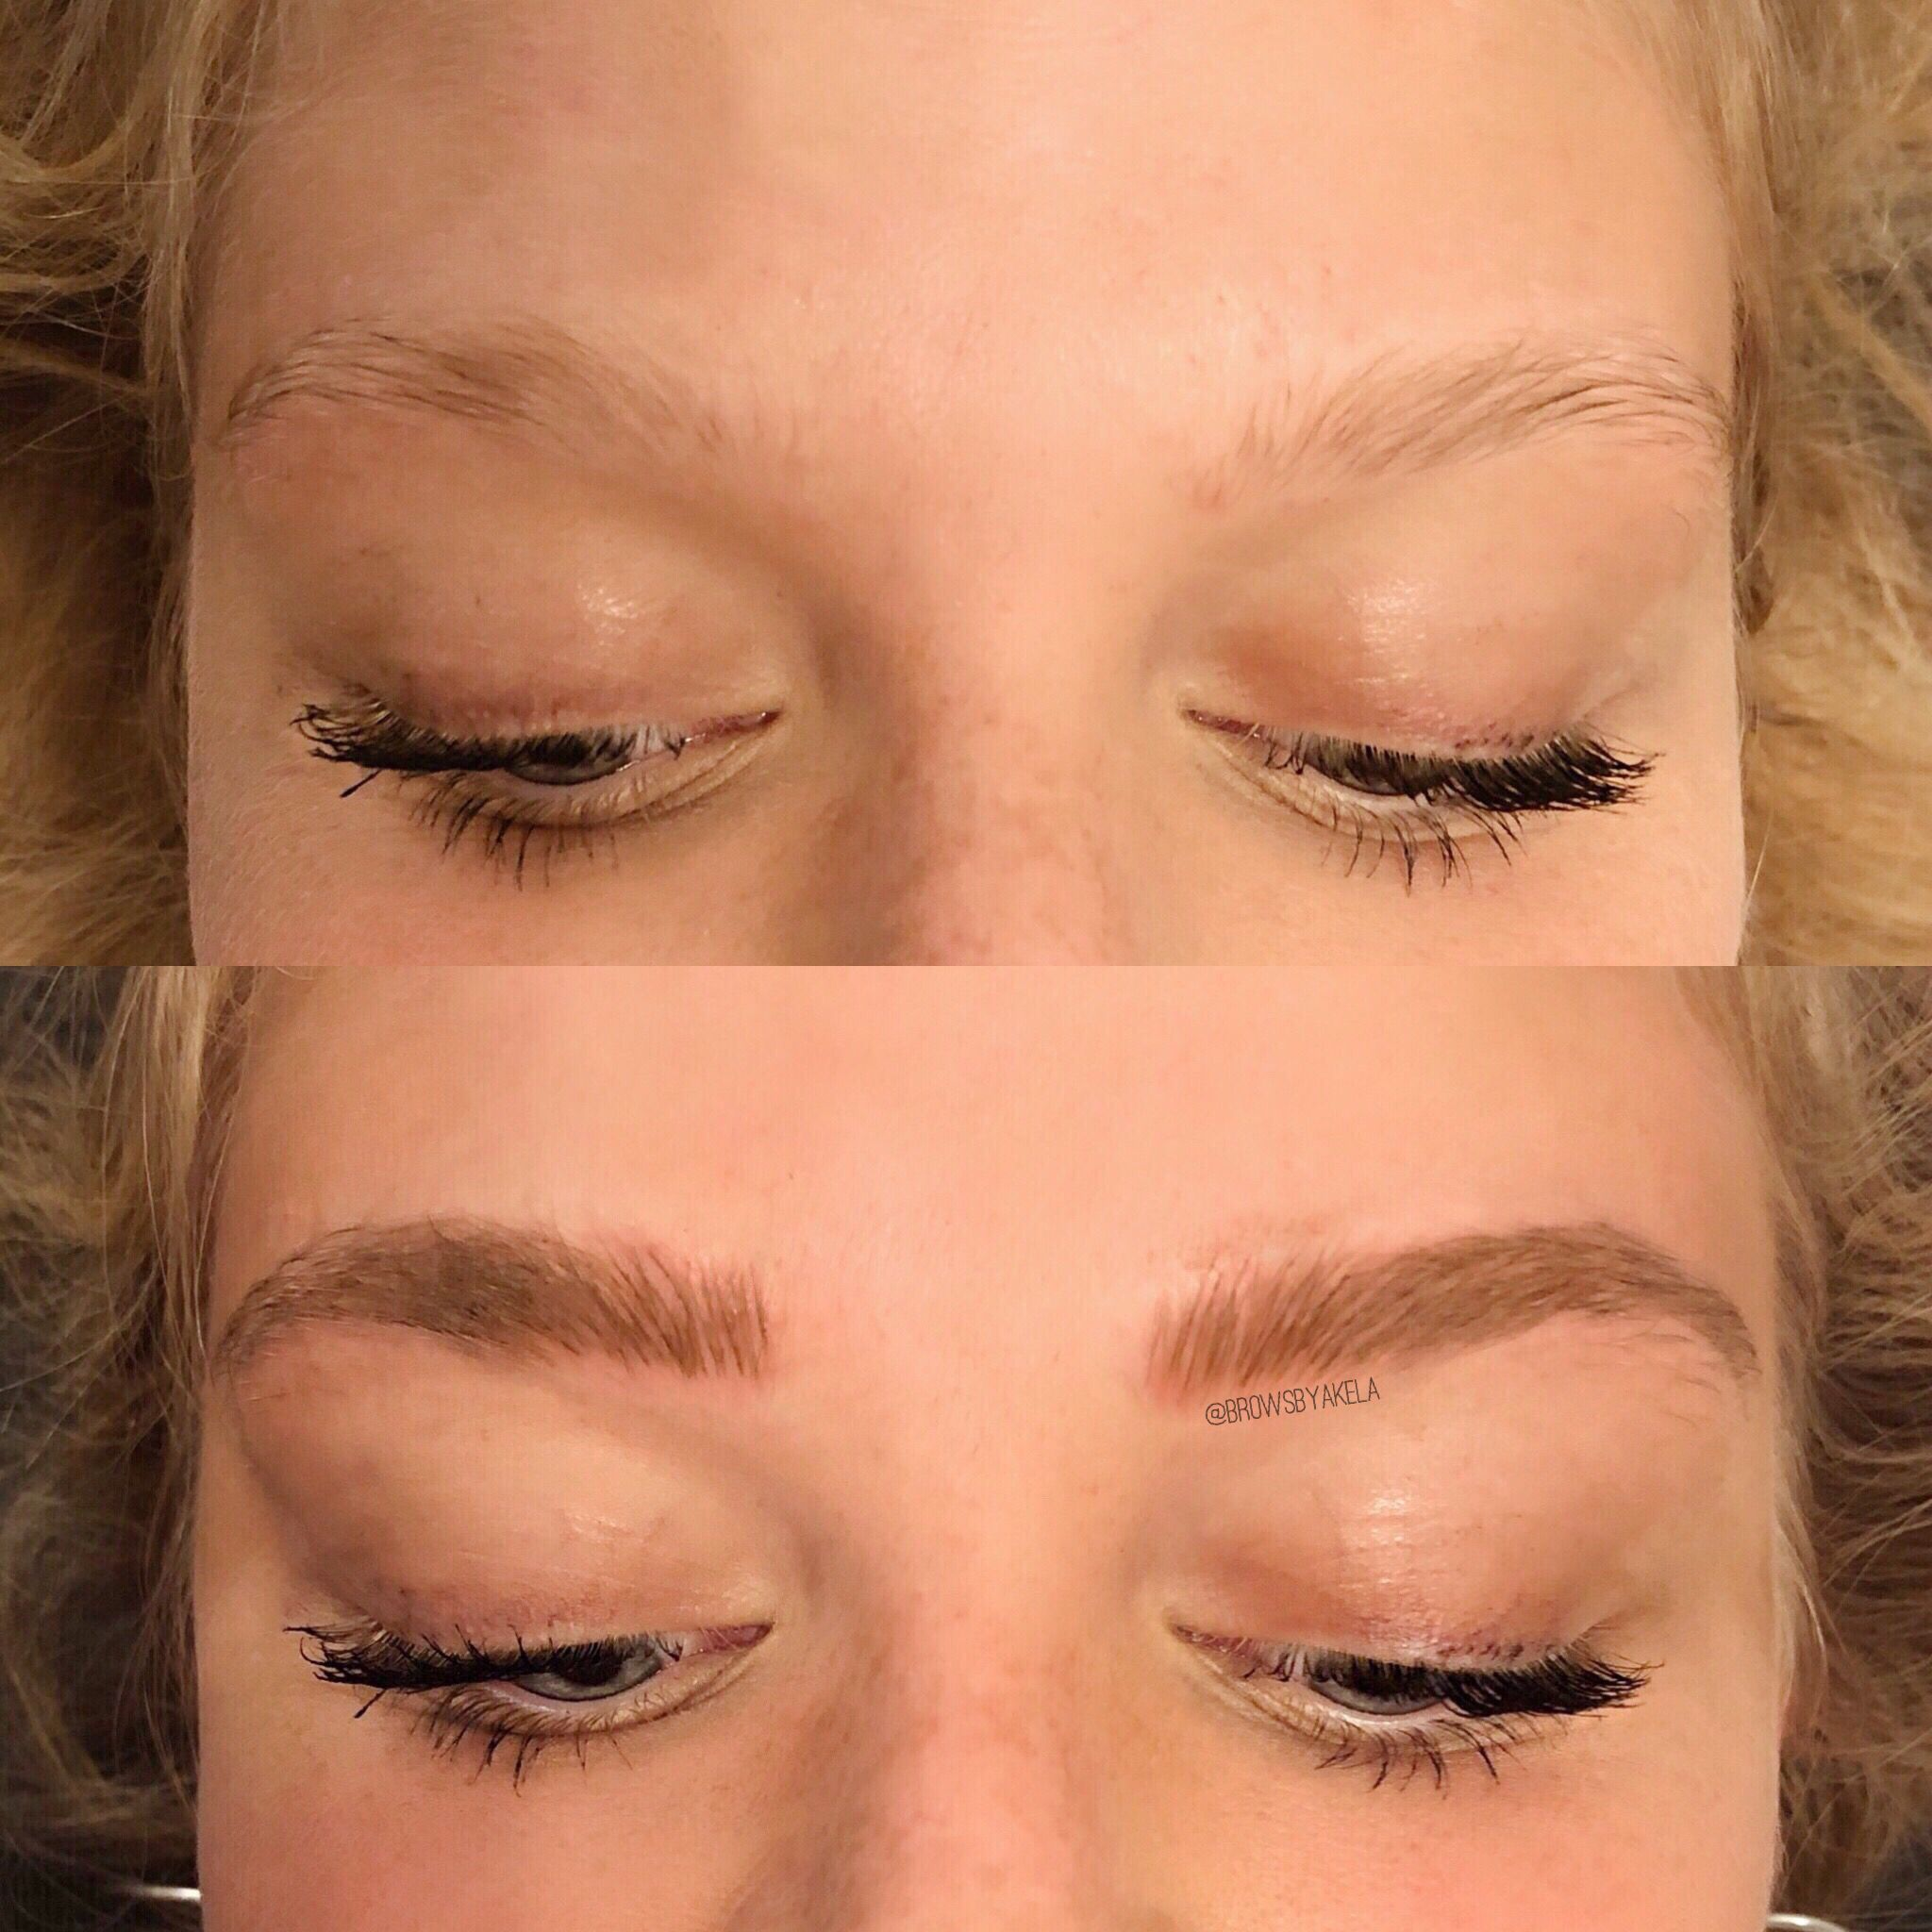 Pin by Aloia Coco on TBB in 2020 Brows, Microblading, Blonde